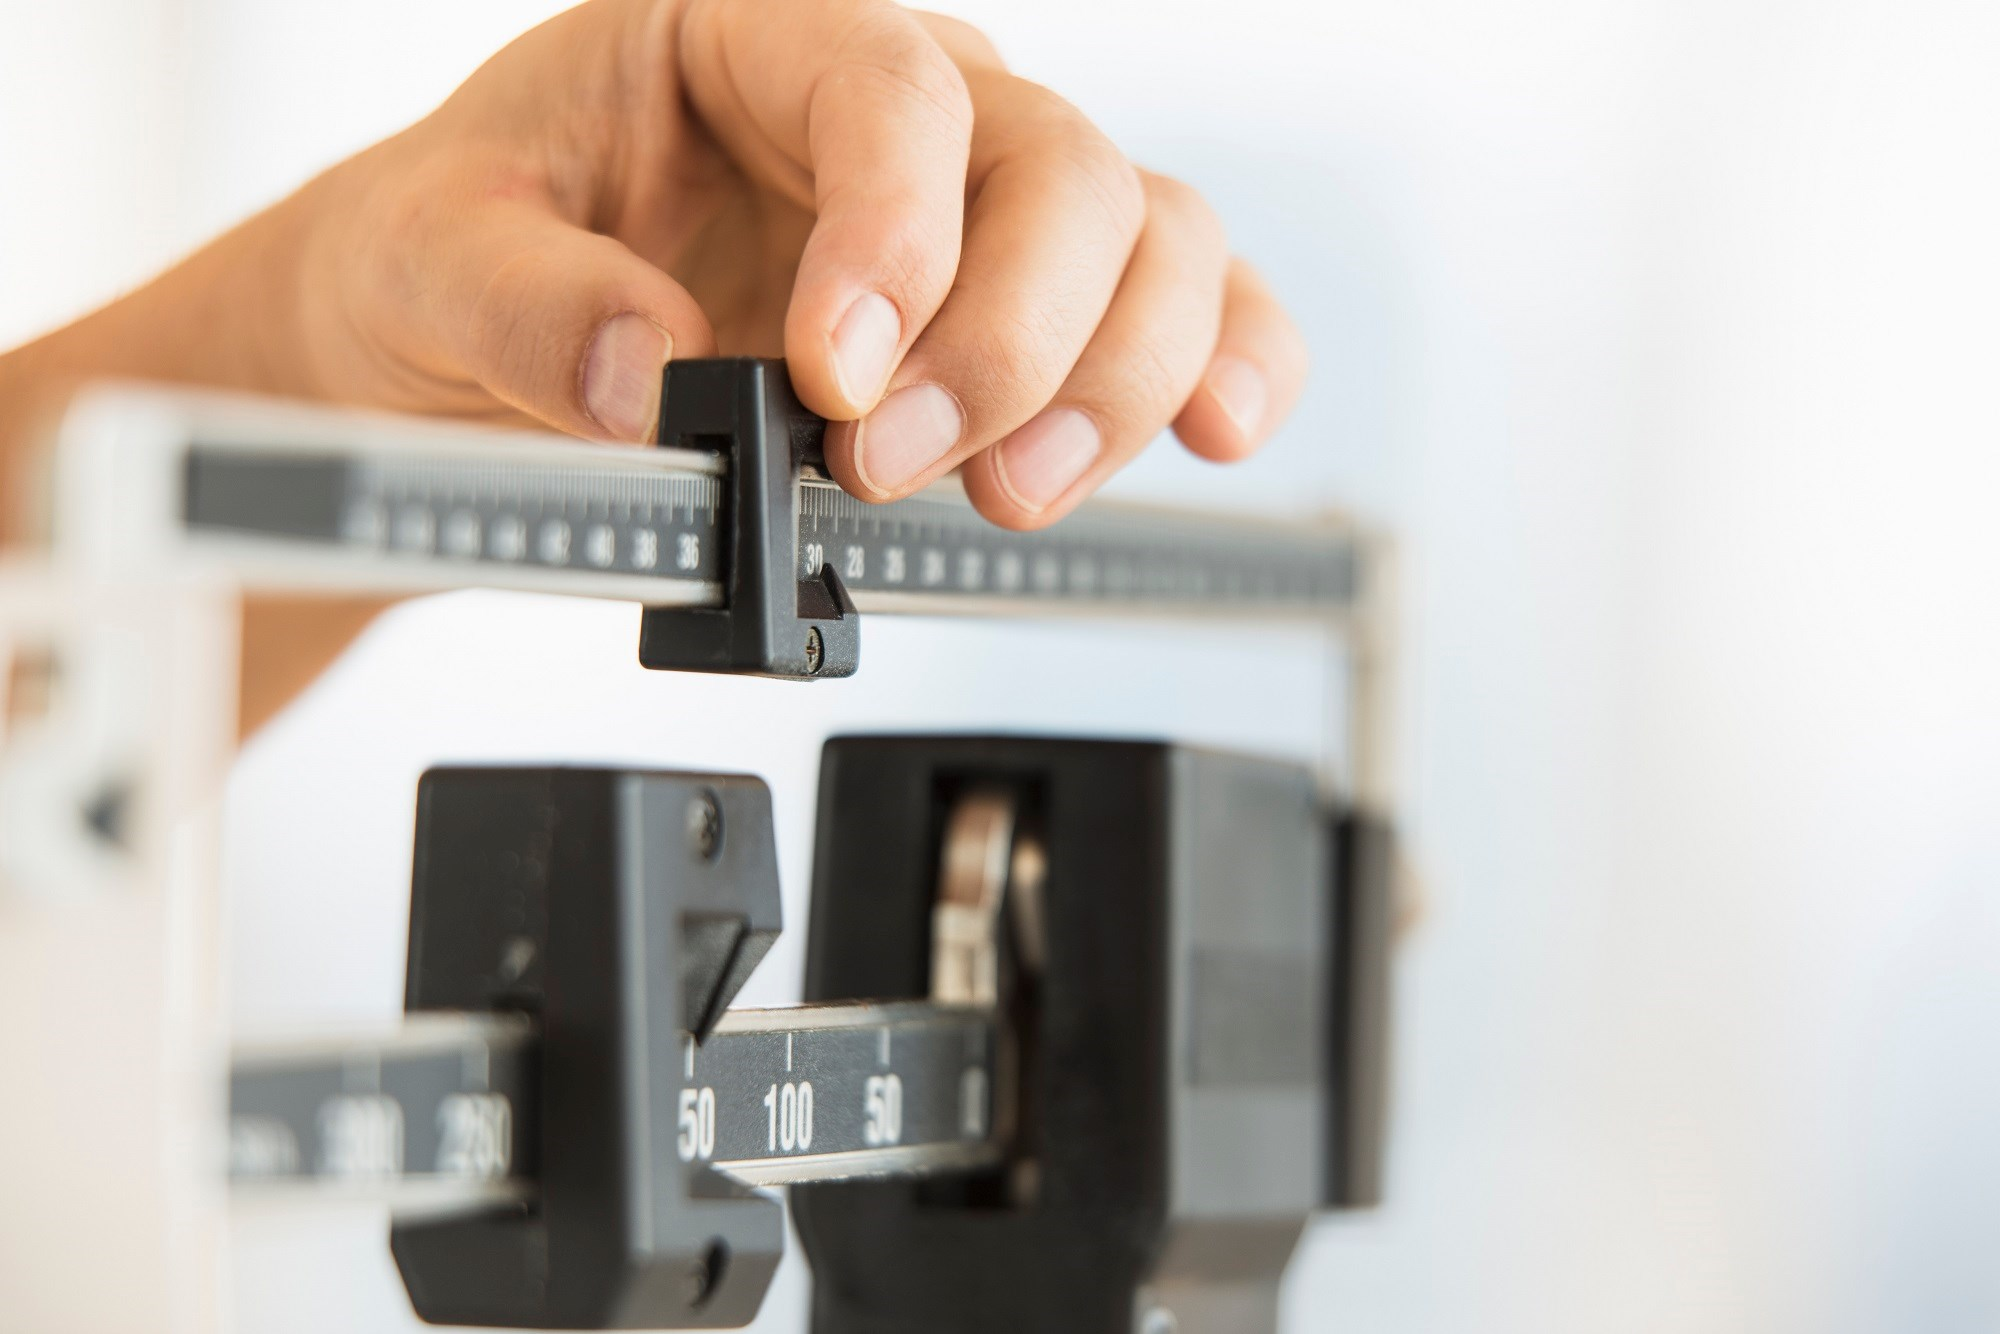 Overweight and obesity are established risk factors for the development of metabolic diseases.